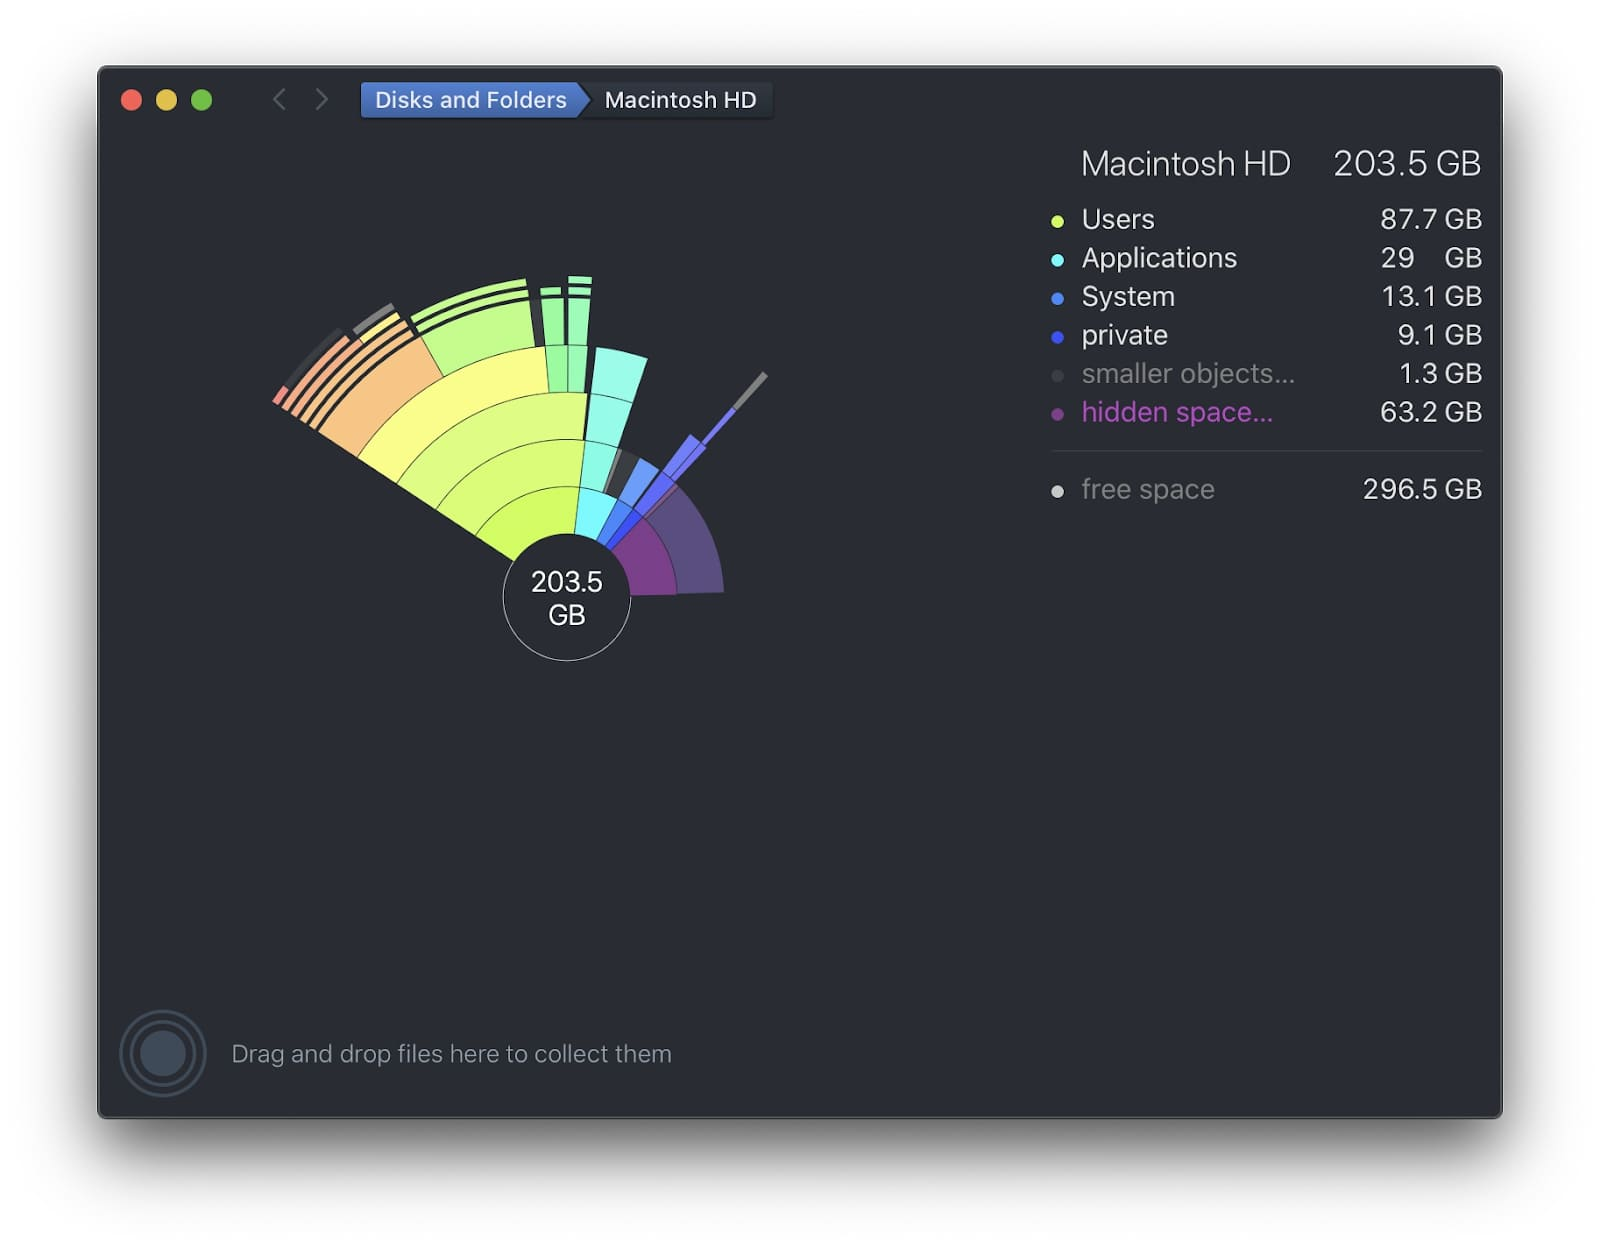 DaisyDisk - how to manage the disk space on Mac